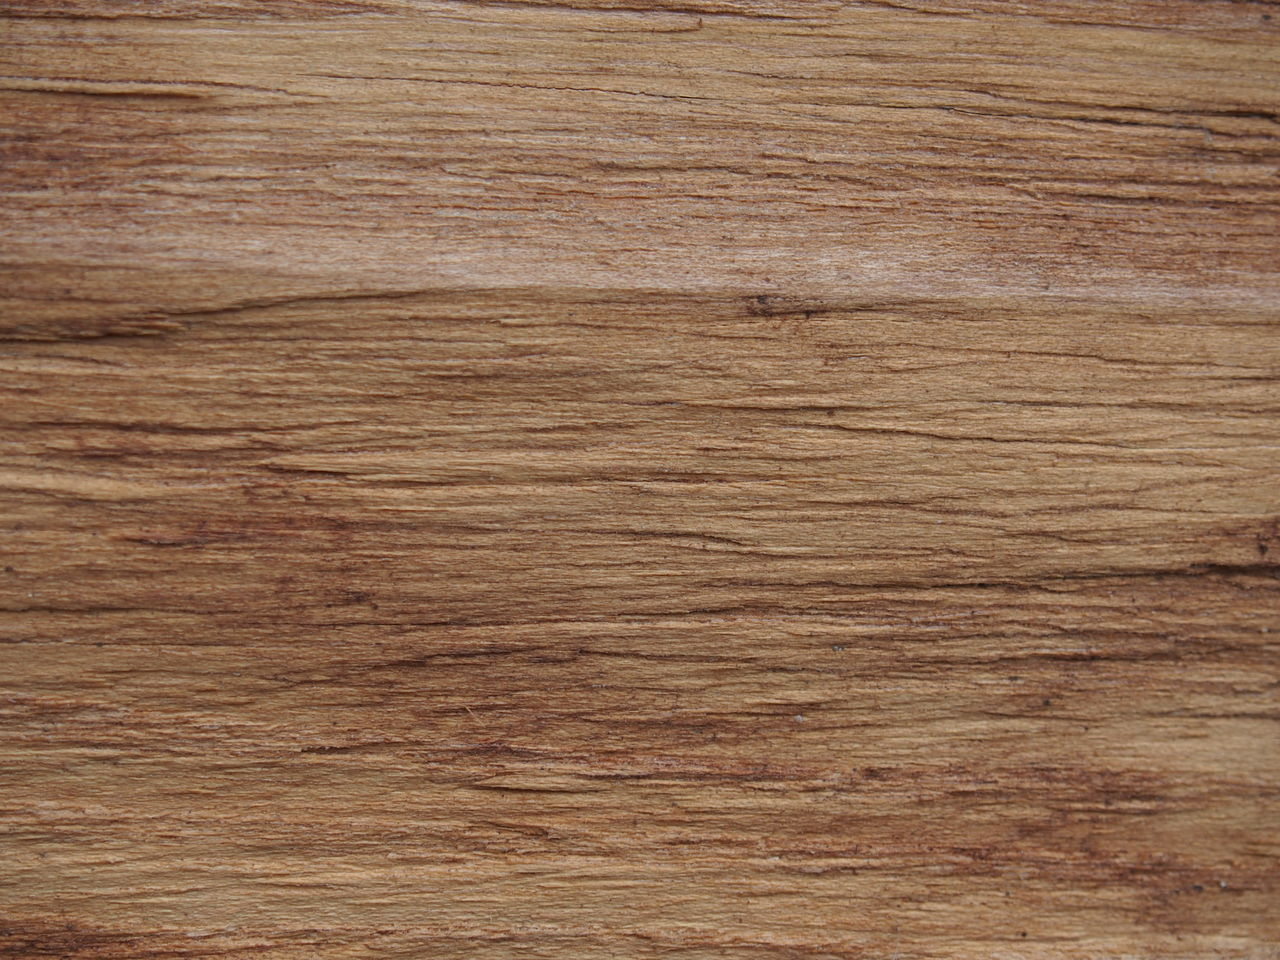 wood grain, backgrounds, timber, plank, brown, pattern, nature, hardwood, wood paneling, wood - material, textured, lumber industry, material, dark, rough, empty, no people, blank, full frame, close-up, construction frame, control panel, tree